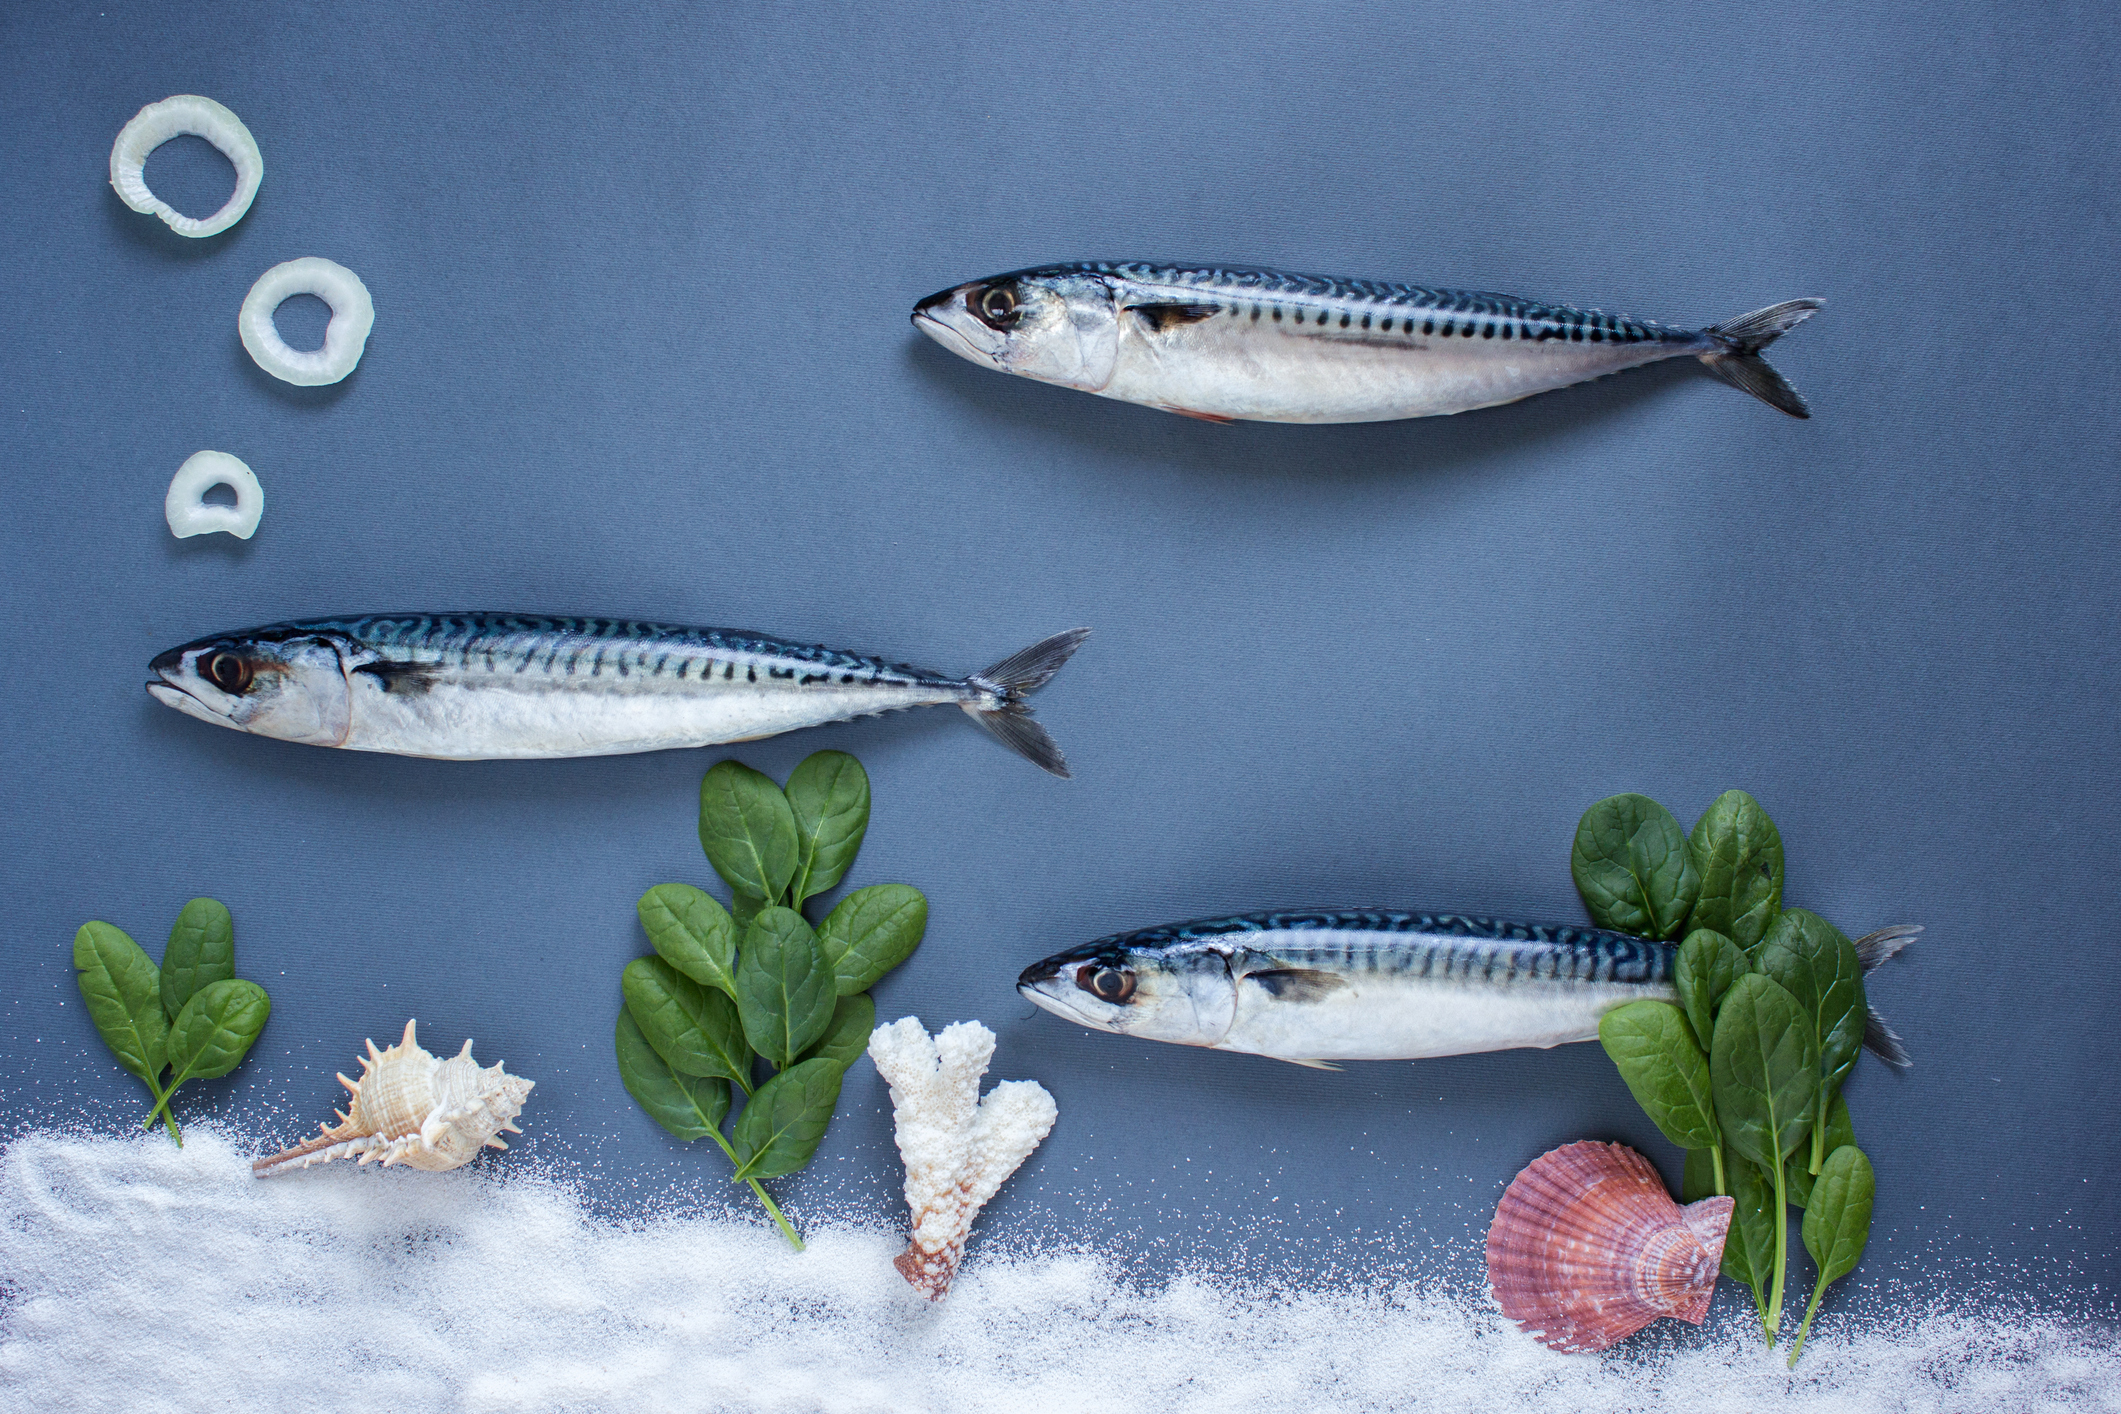 Fishing for better blood sugar? Try these tiny fish